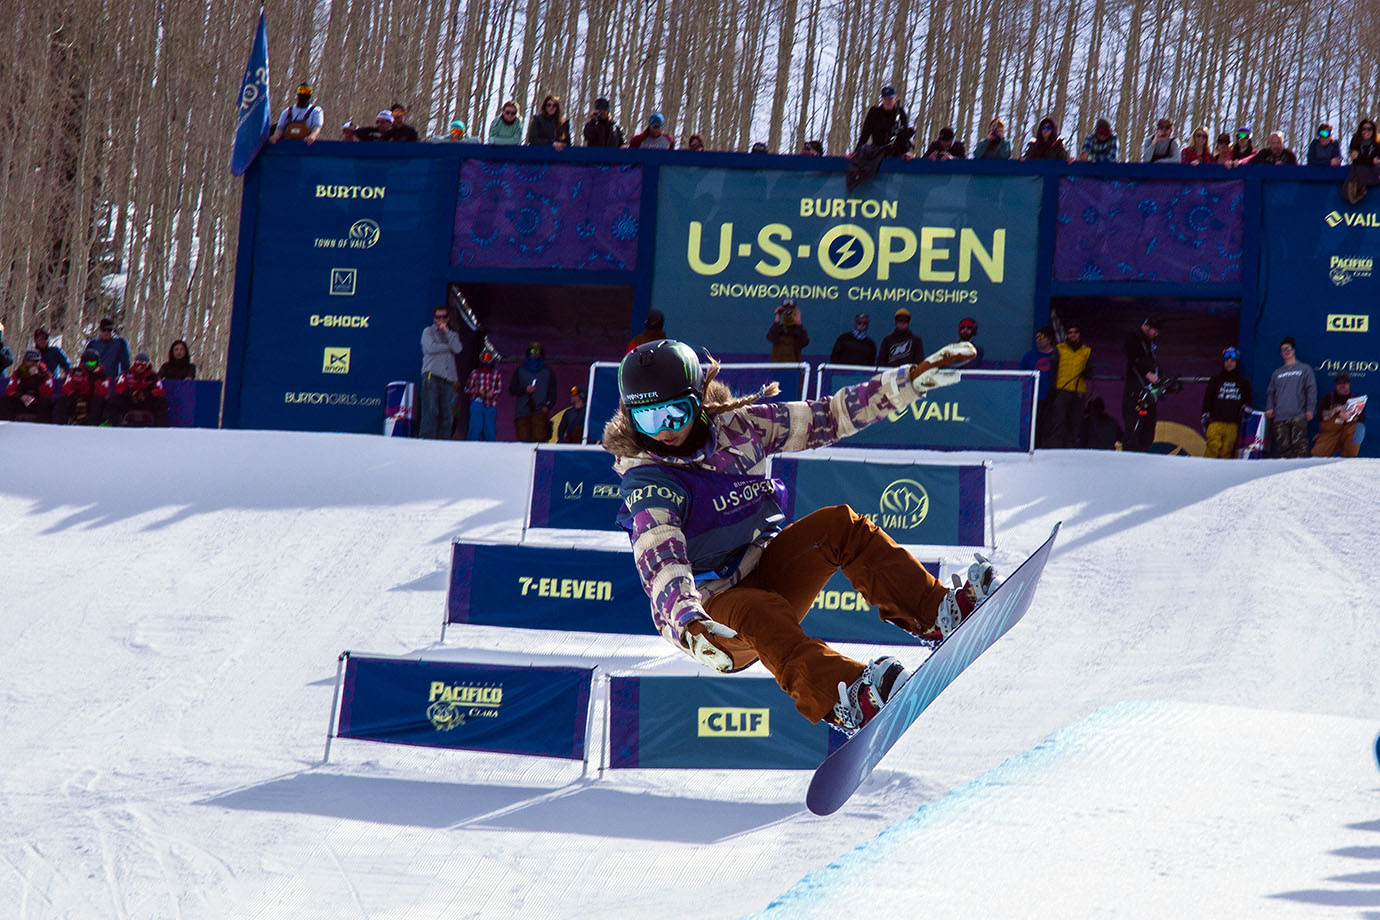 ...That is 15-year-old Chloe Kim, who has taken her riding to the next level this season. Since the end of January, Kim has won superpipe events at two X Games (Aspen, Oslo), a Grand Prix event (Mammoth) and now the U.S. Open. She won at the last two mentioned stops with back-to-back 1080s, which only she has ever done in competition.